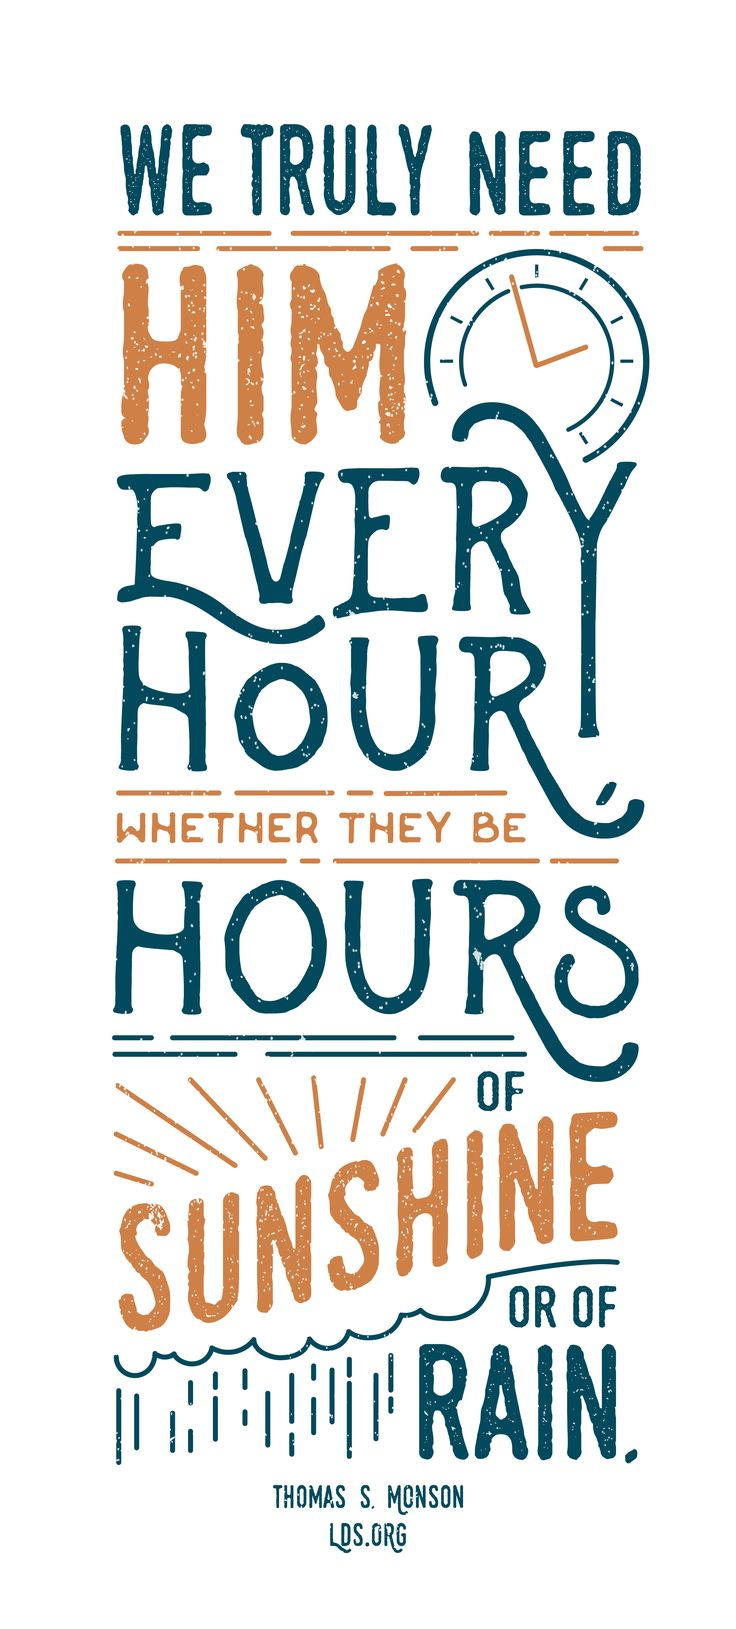 We truly need Him every hour, whether they be hours of sunshine or of rain. —Thomas S. Monson #LDS